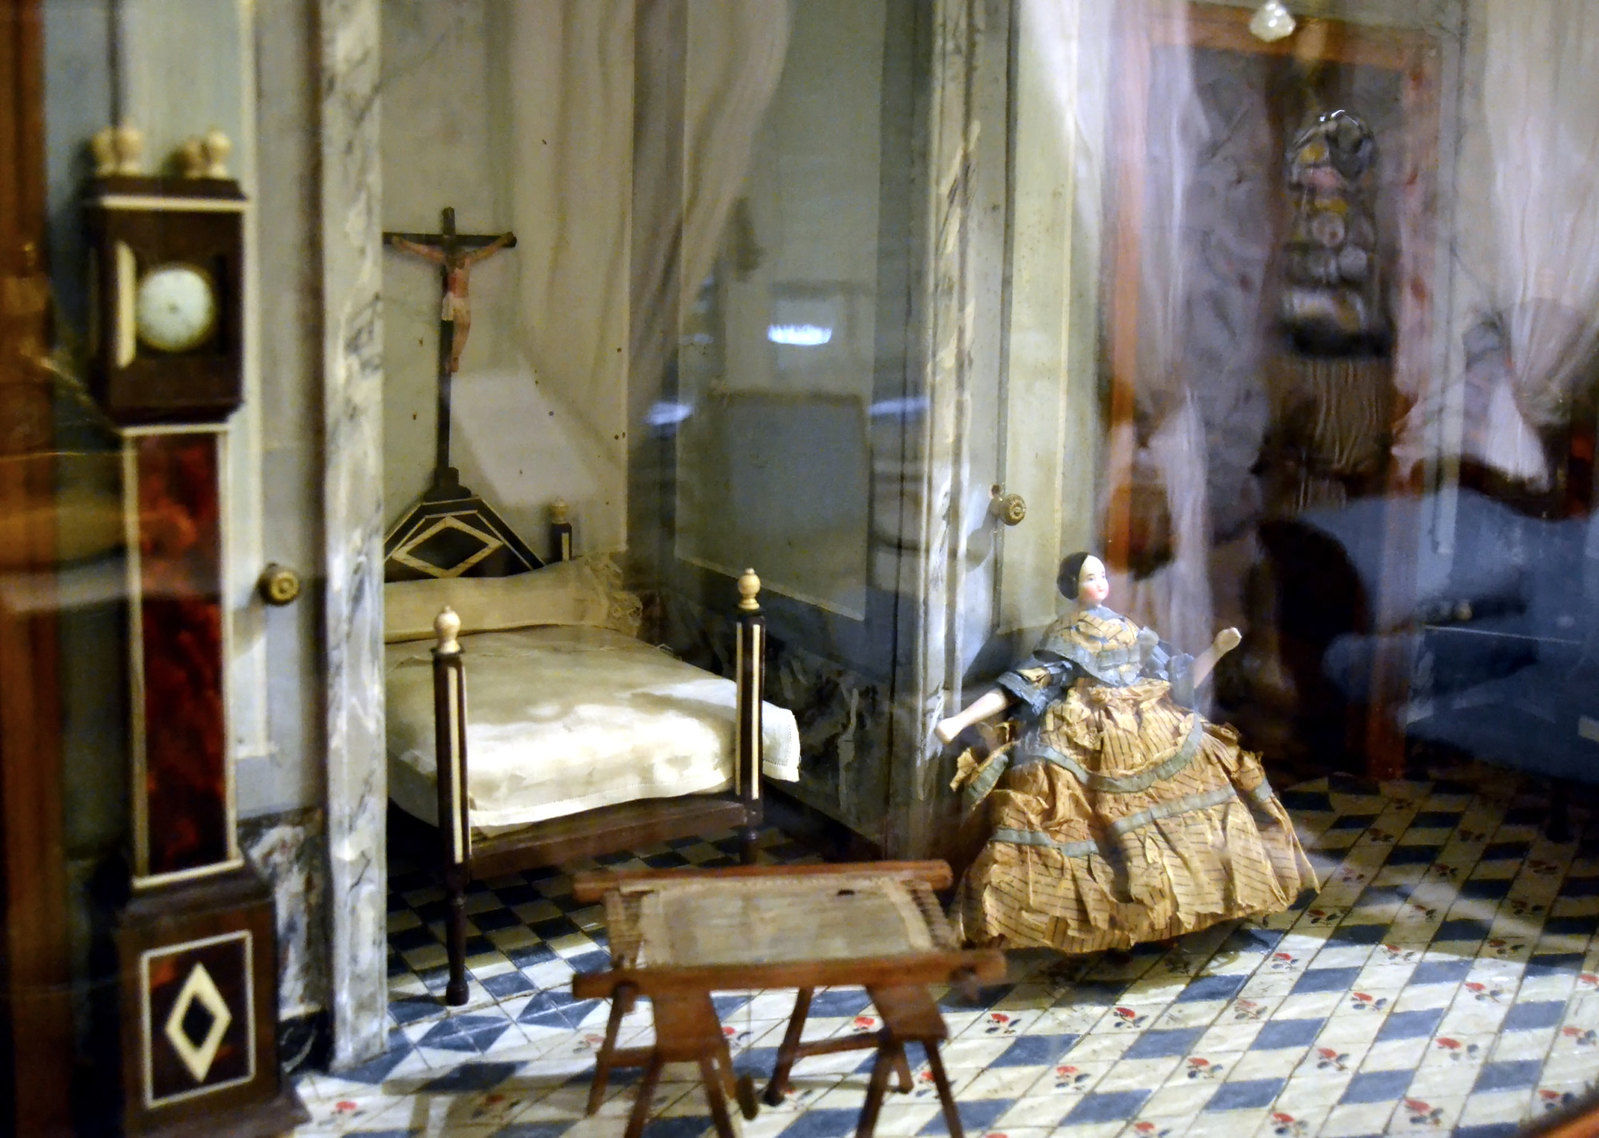 19th-century Dollhouse. Credit Joanbanjo2